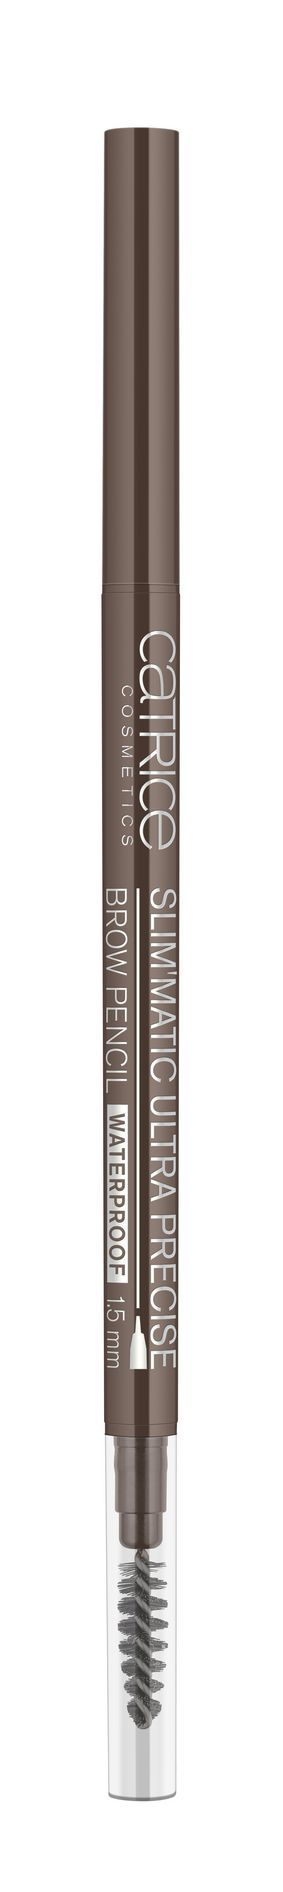 Catrice Slim'Matic Ultra Precise Brow Pencil Waterproof 040-Cool Brown